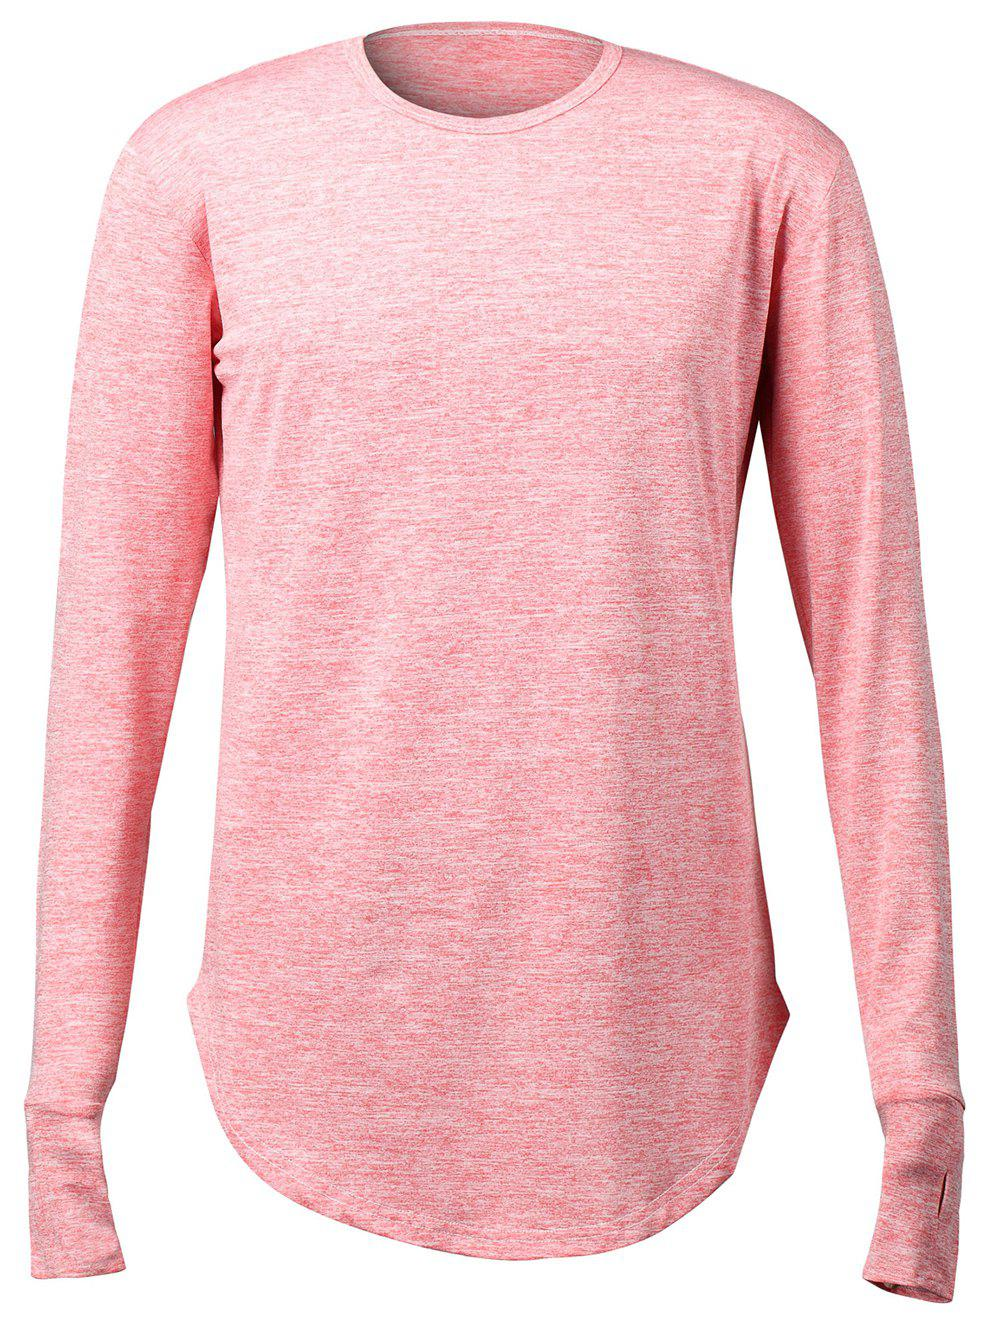 2018 Long Sleeve Stretchy Finger Hole Design T Shirt Red M